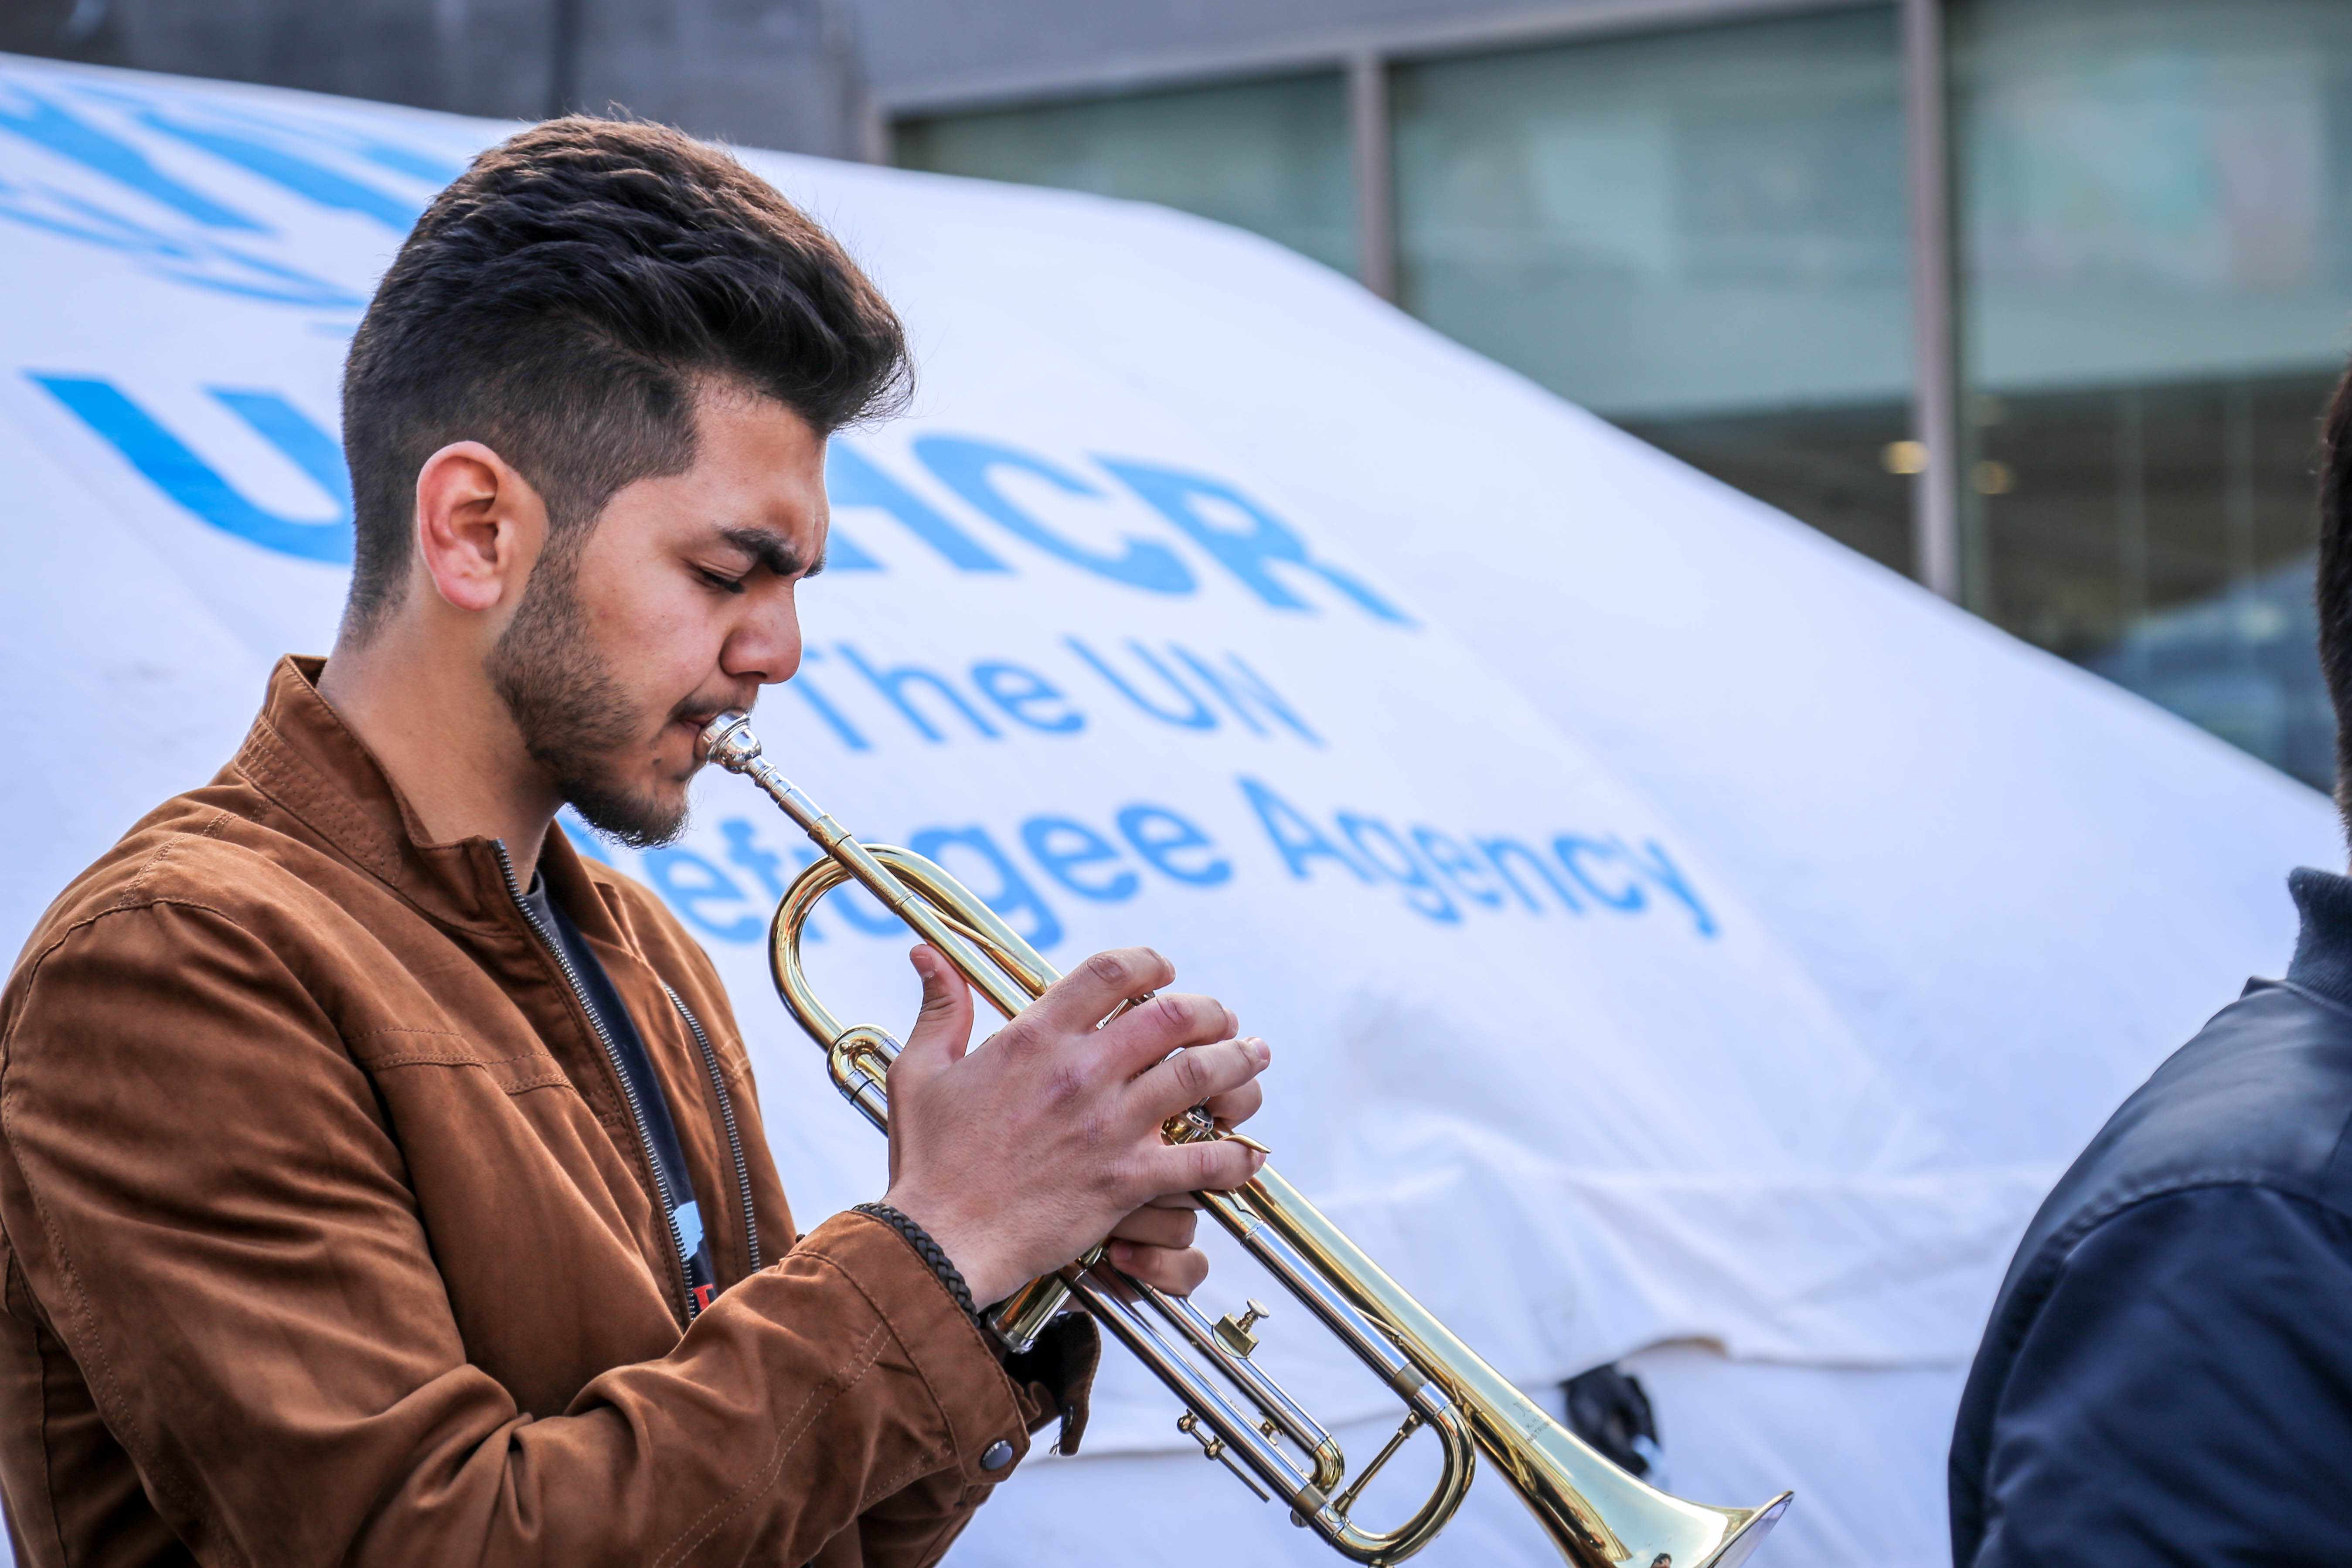 refugee children play music for integration northern europe